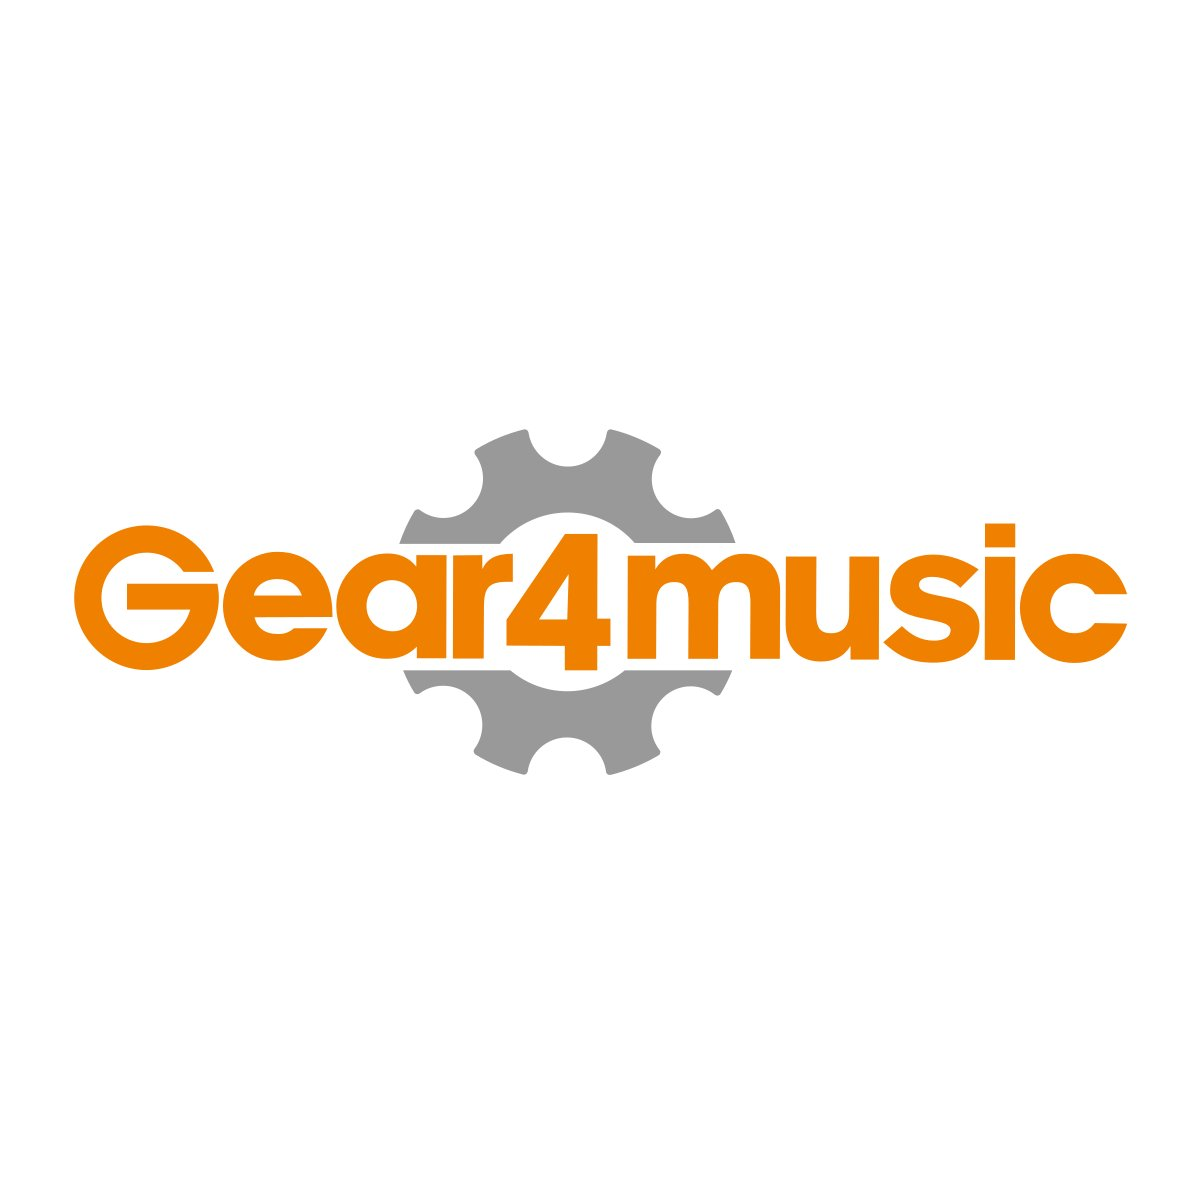 Piano Digital DP-10X de Gear4music + Pack de Accesorios - Negro Mate